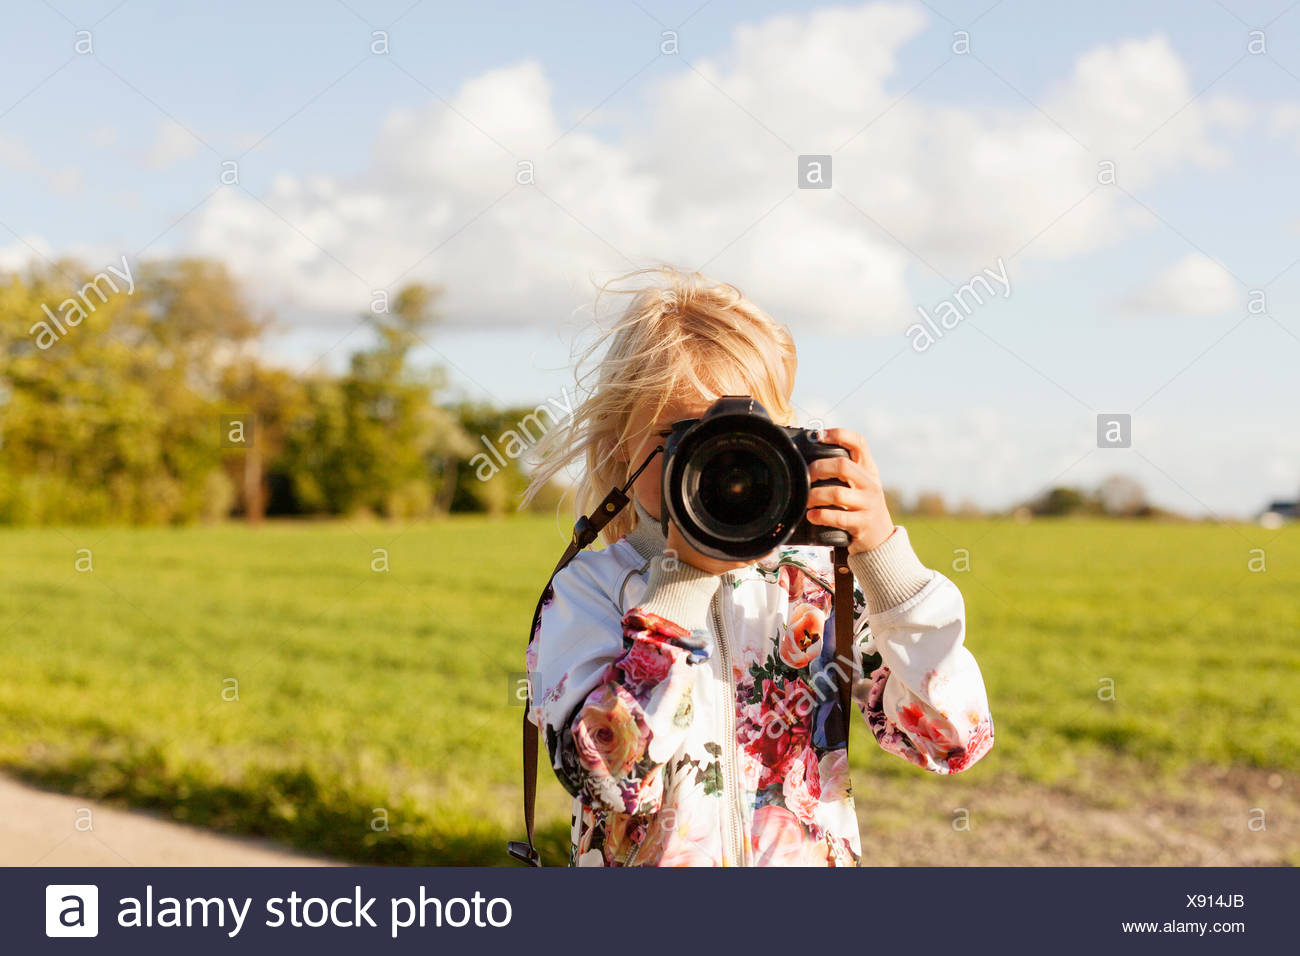 Girl photographing through SLR camera on field against sky - Stock Image